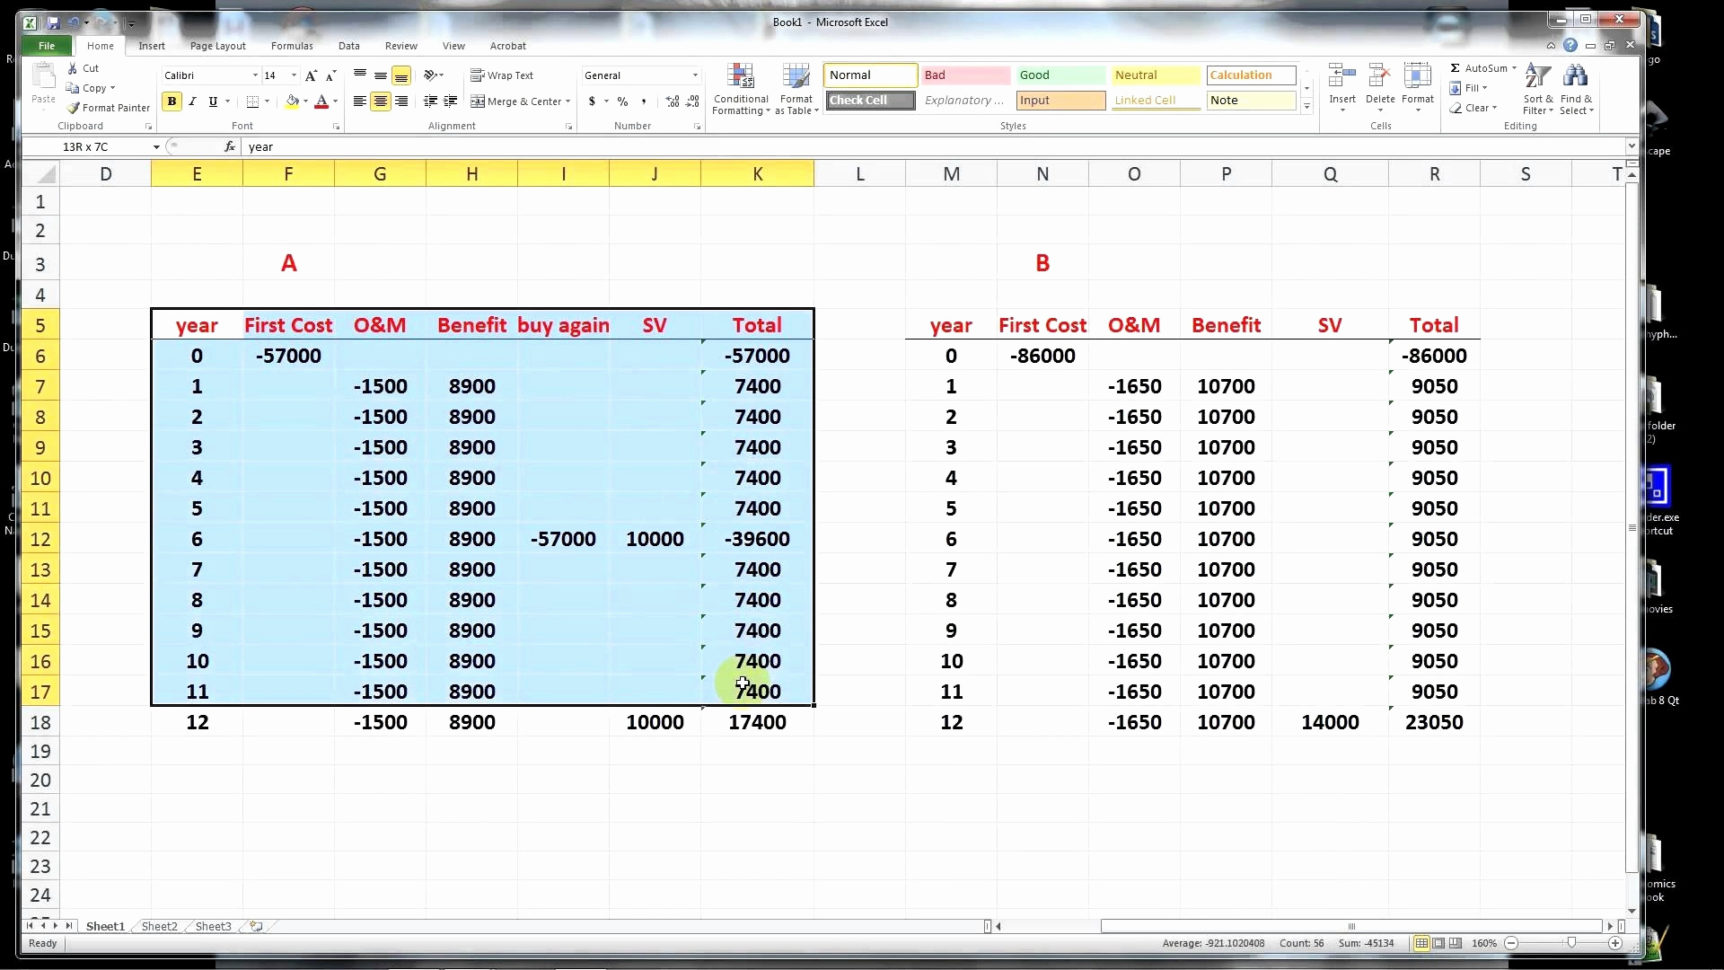 residual land value xls residual land value spreadsheet  Residual Land Value Spreadsheet Pertaining To Residual Land Value Spreadsheet – Spreadsheet Collections Residual Land Value Spreadsheet Printable Spreadshee